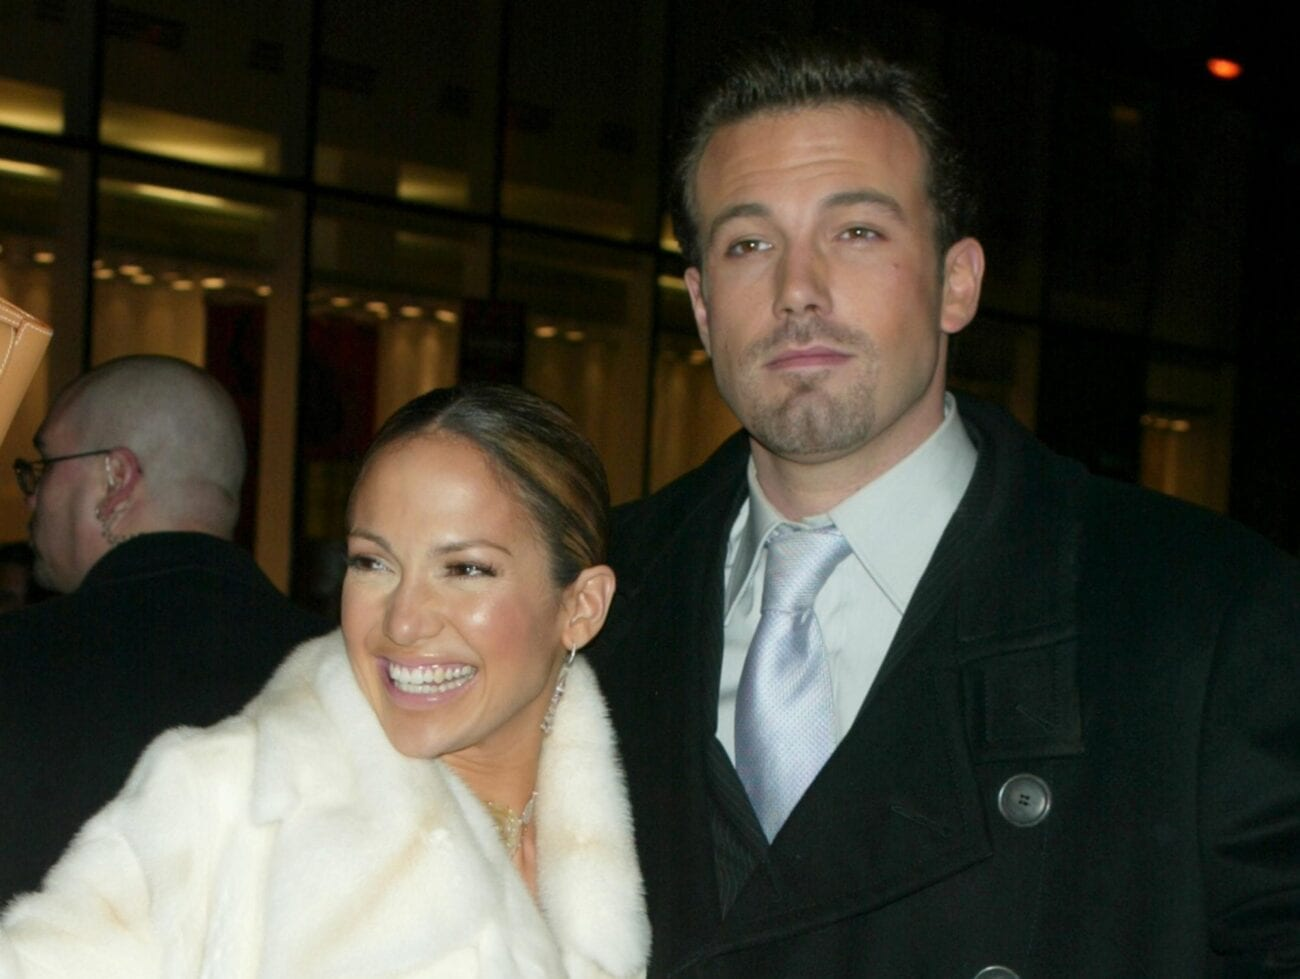 Miami nice! Things are looking up for Bennifer 2.0, as Ben Affleck and Jennifer Lopez have been spotted once again on a potential vacation.